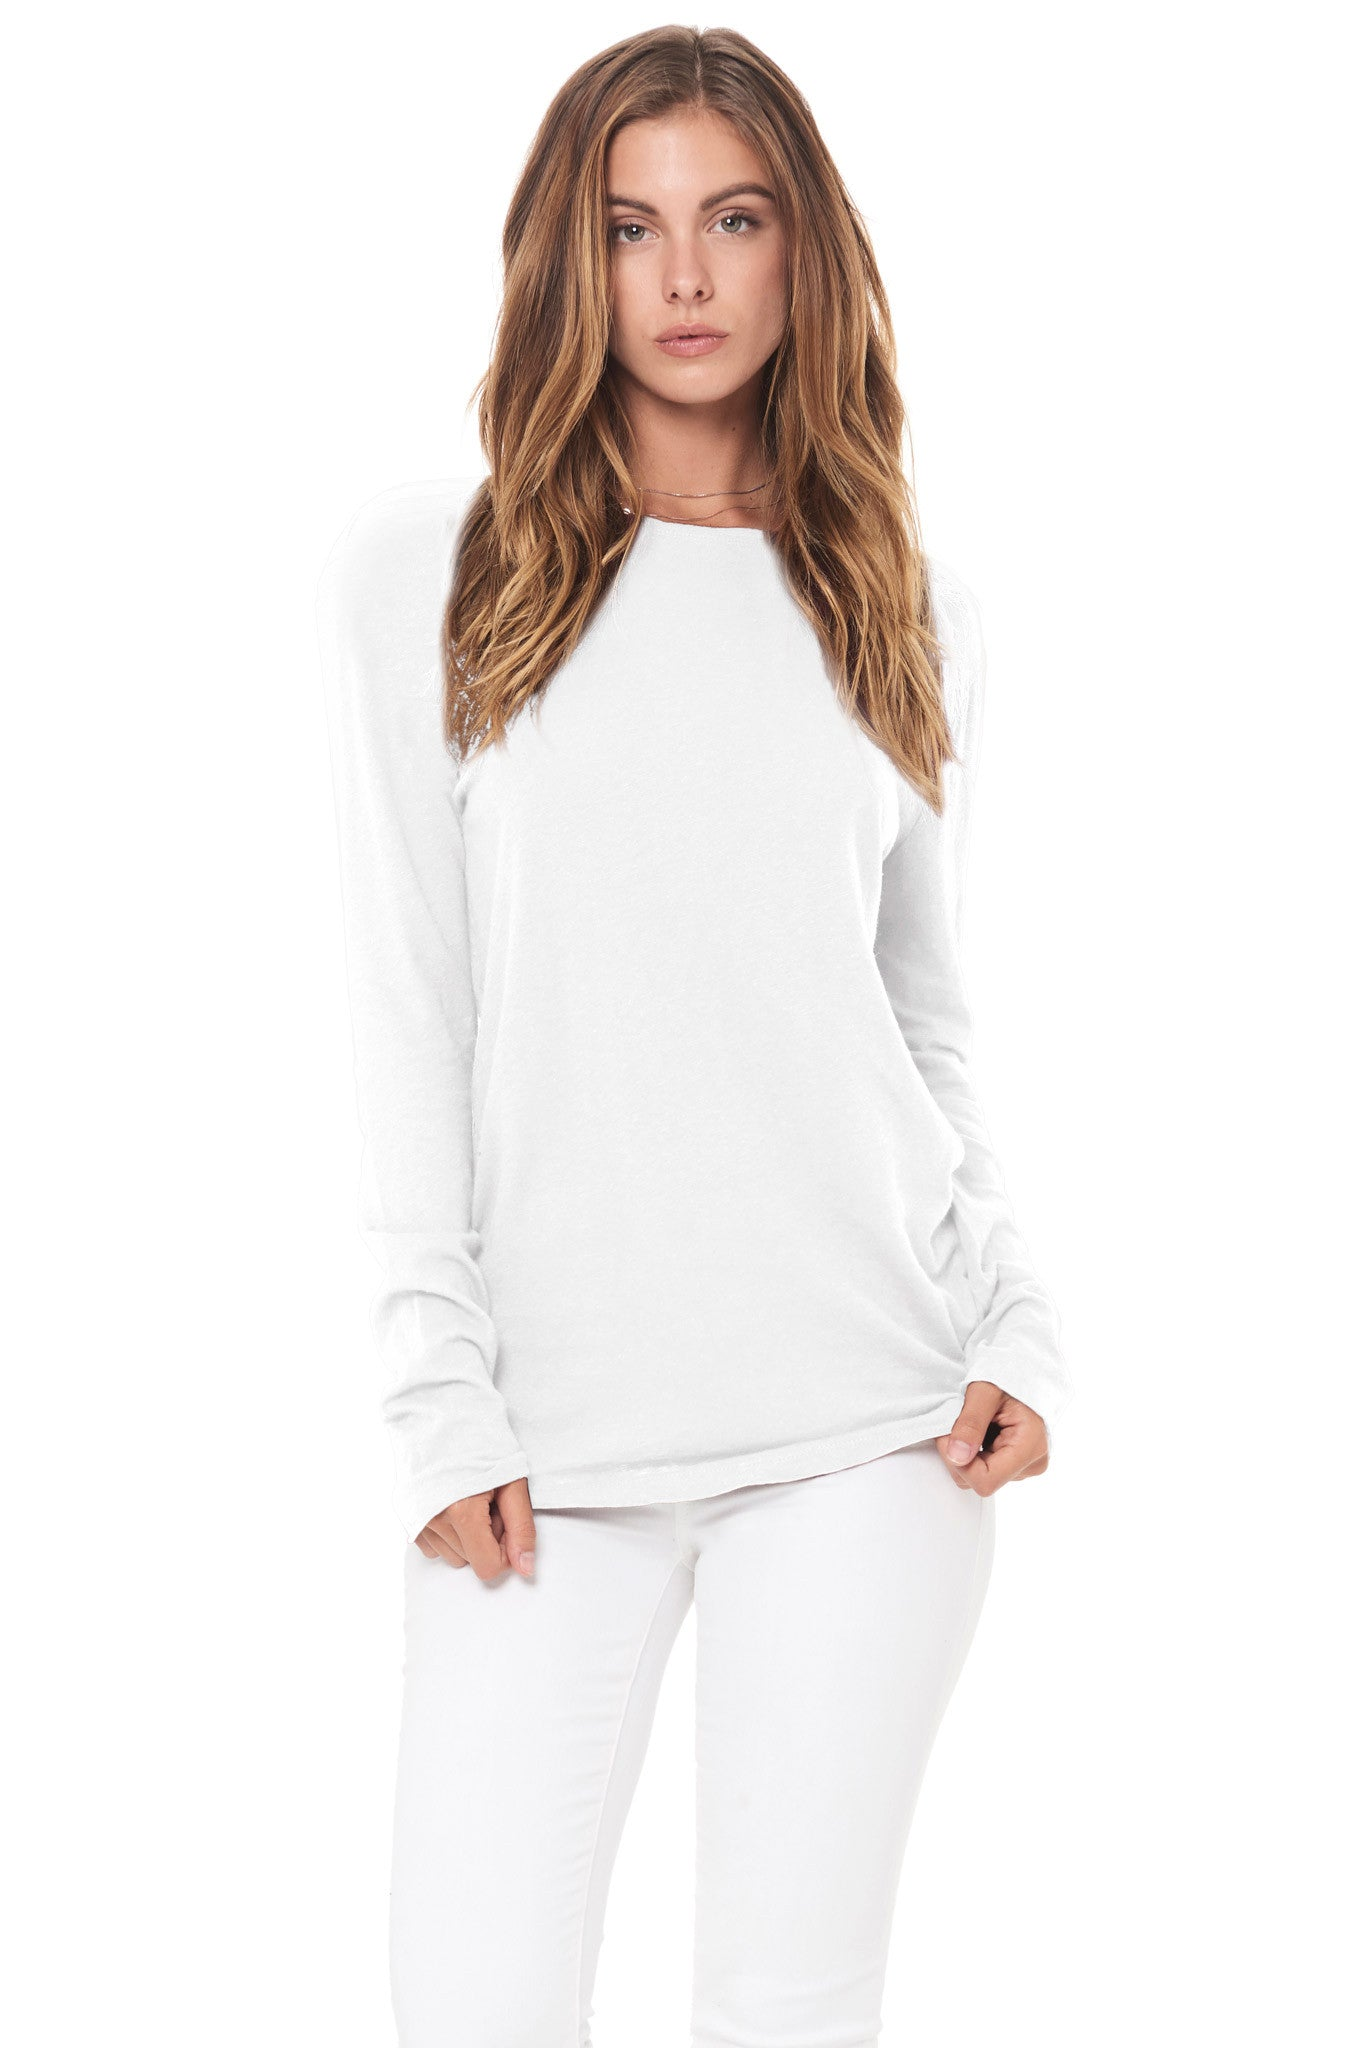 WOMEN'S LINEN BLEND CREW NECK LONG SLEEVE SHIRT - WHITE